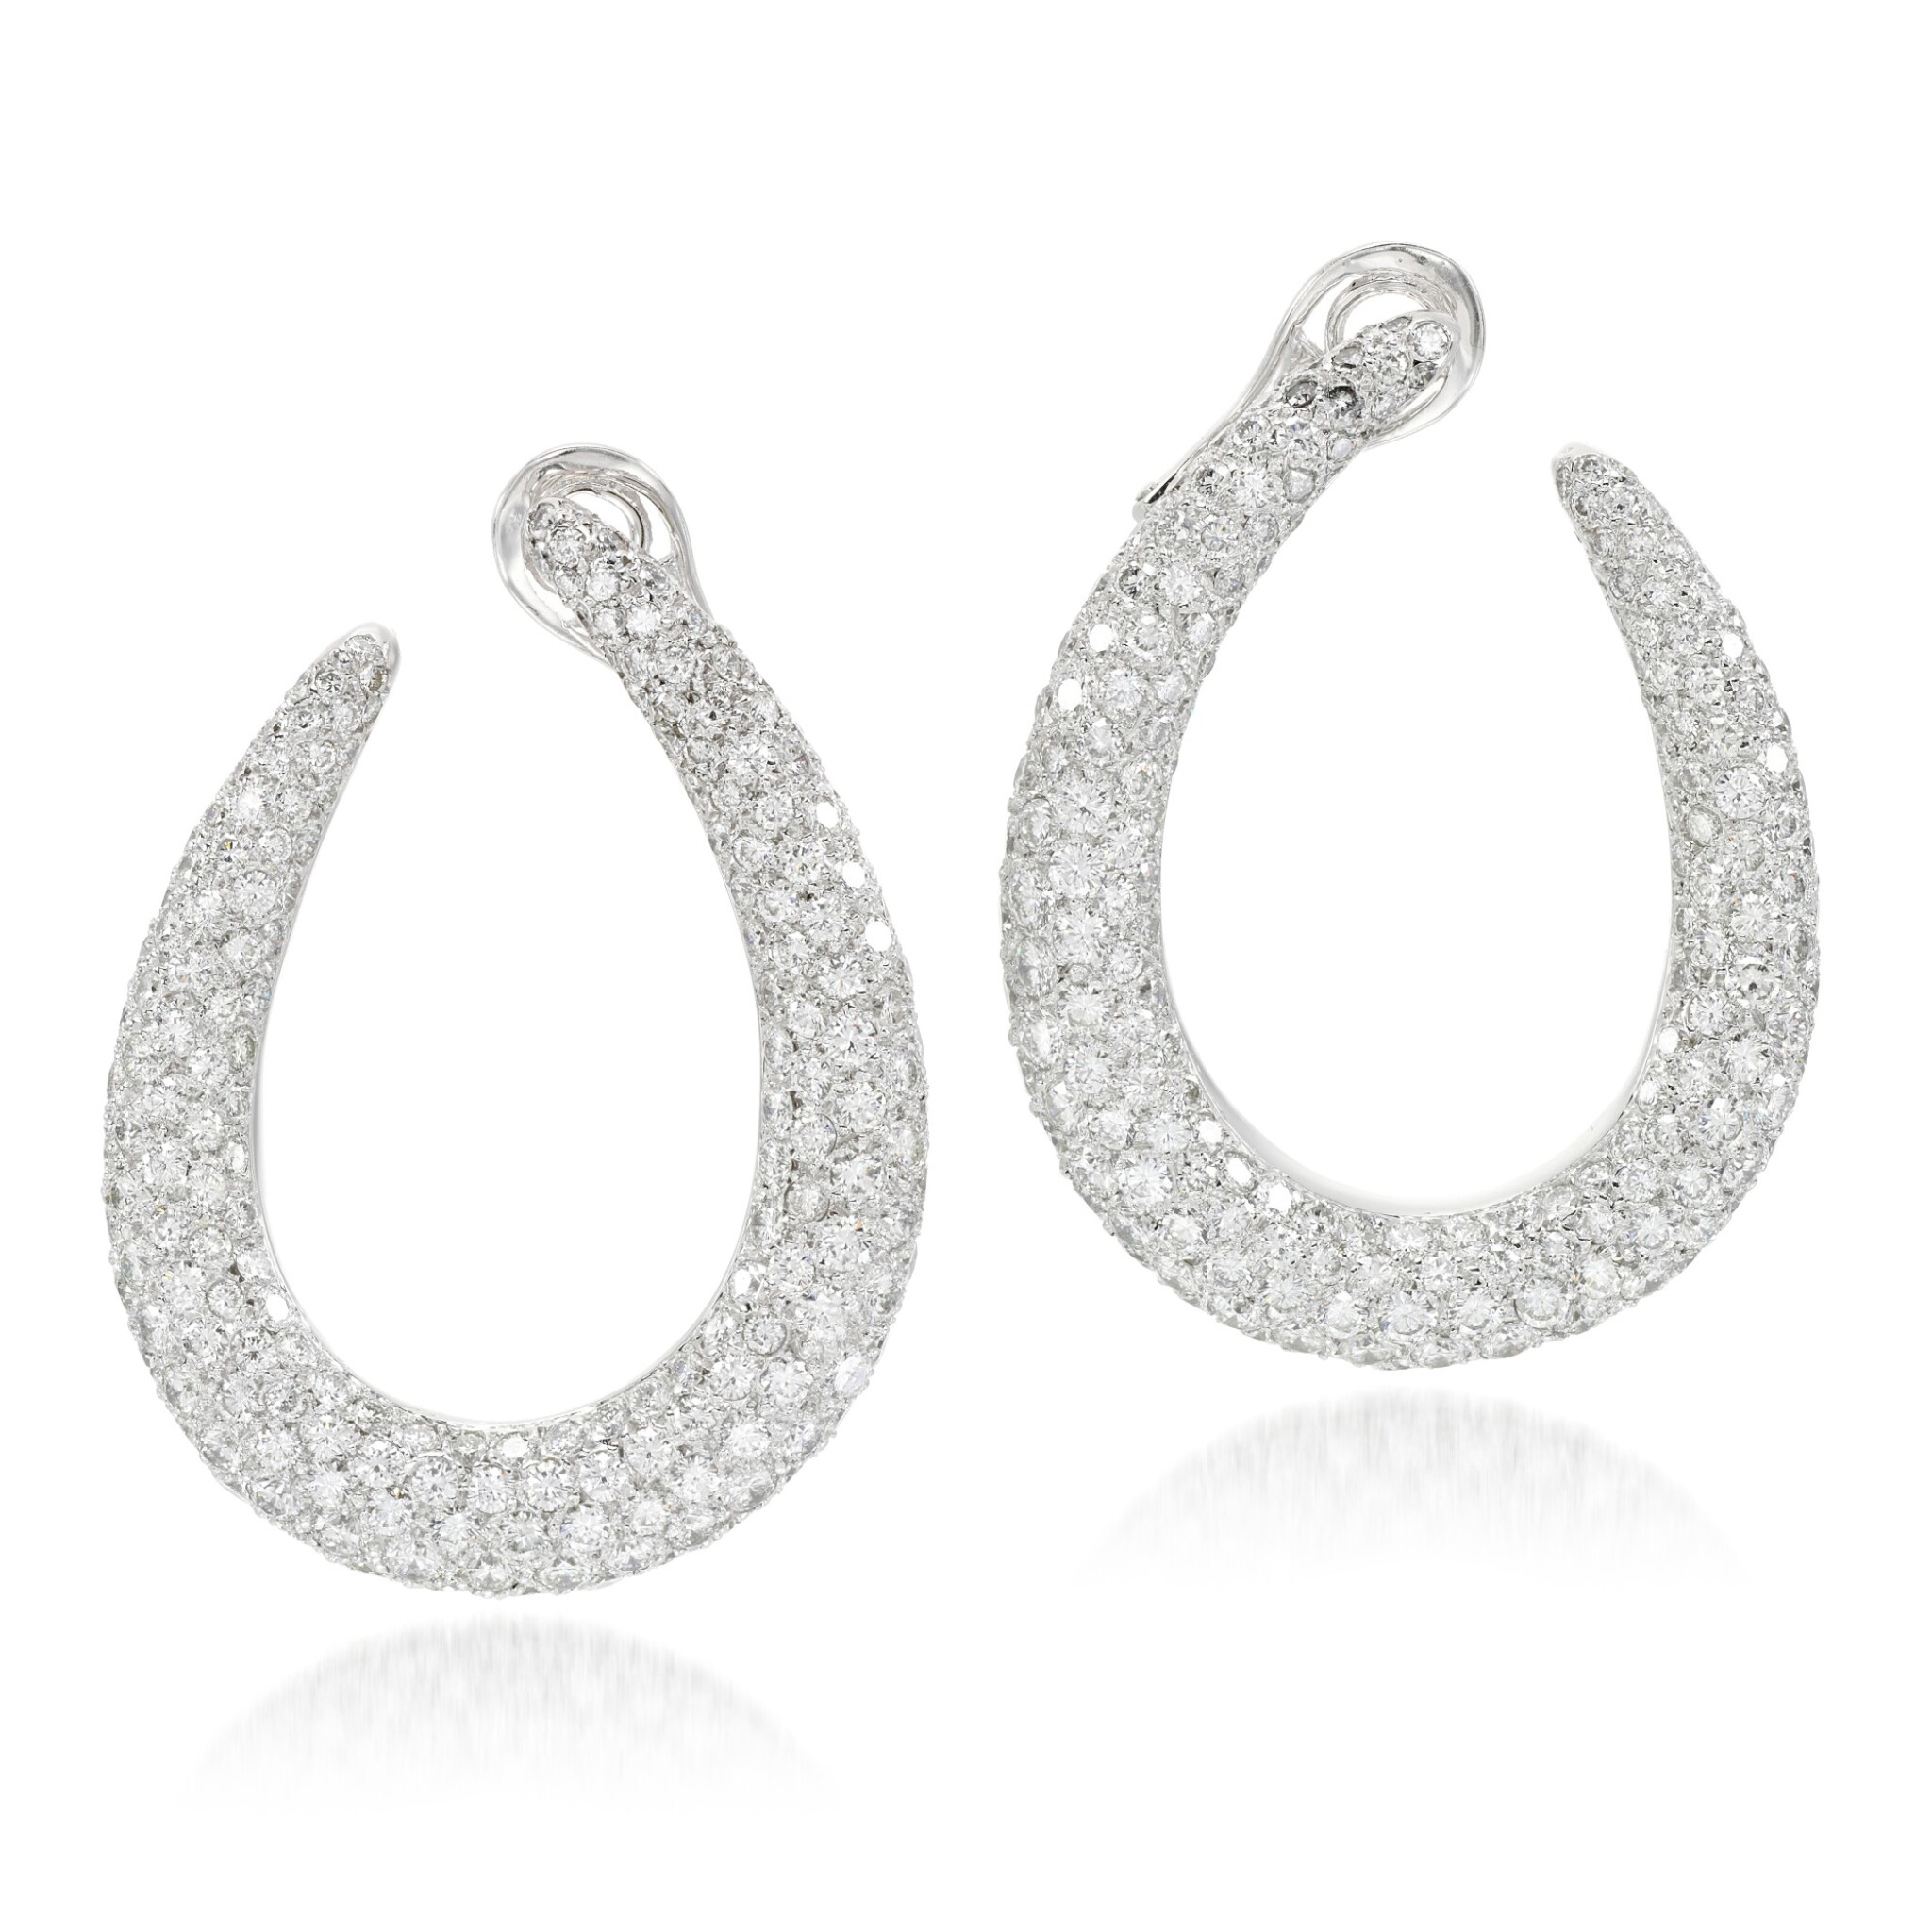 View 1 of Lot 53. Pair of diamond earrings.